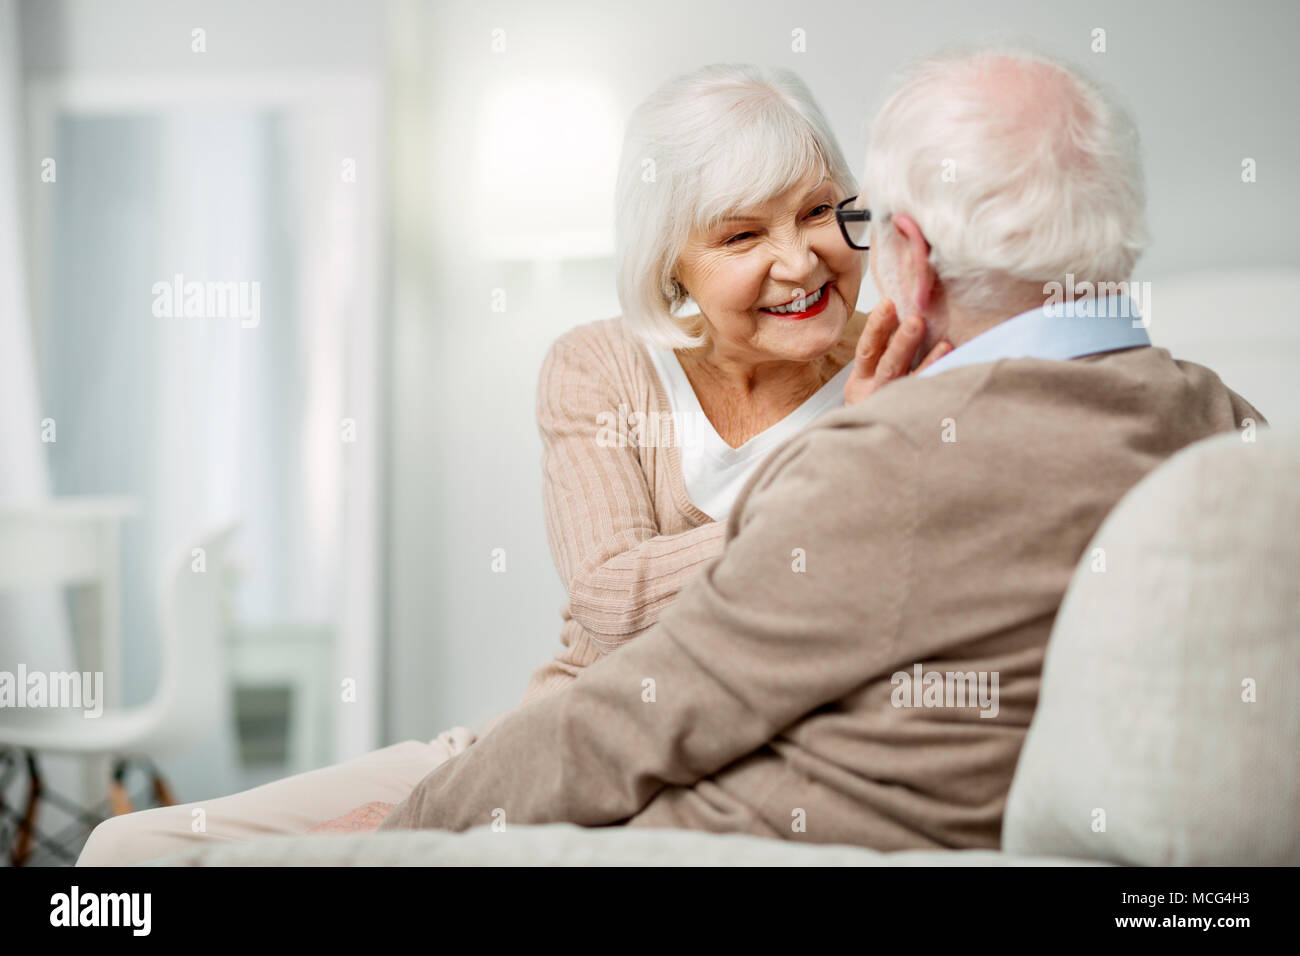 Cheerful senior woman looking at her husbands face - Stock Image